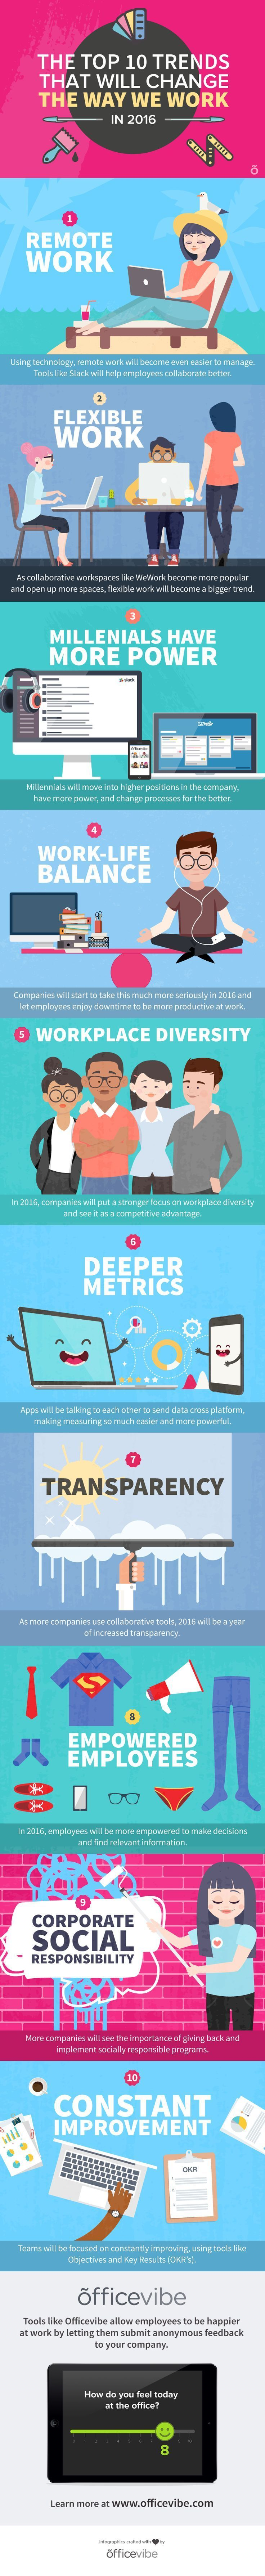 The Top 10 Trends That Will Change The Way We Work in 2016 #Infographic #Trends #Workplace http://buff.ly/2lJJ55dyenye